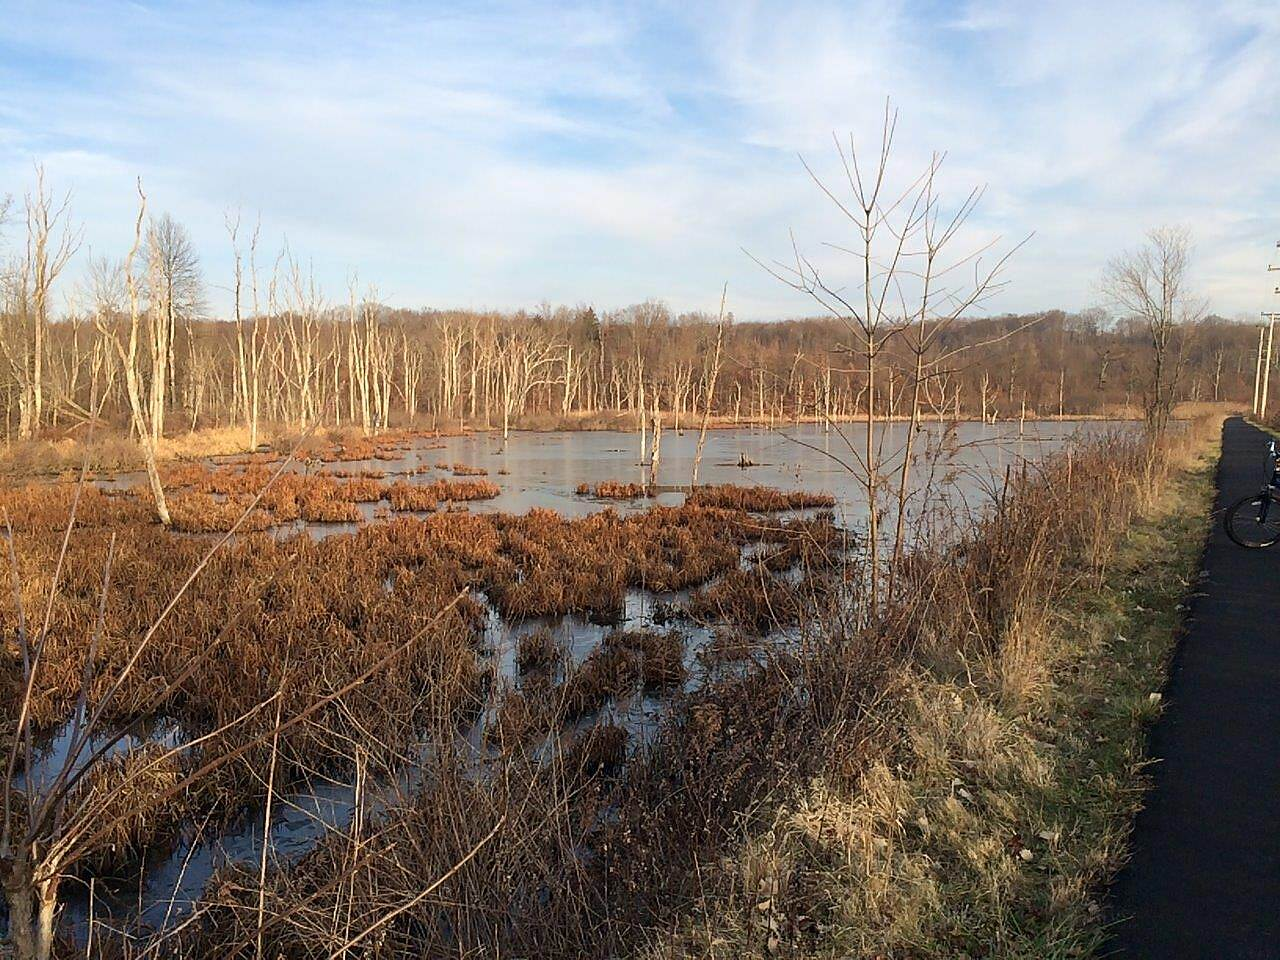 Stavich Bicycle Trail the Pond-Dec 2014 Pond next to the trail, December 2014